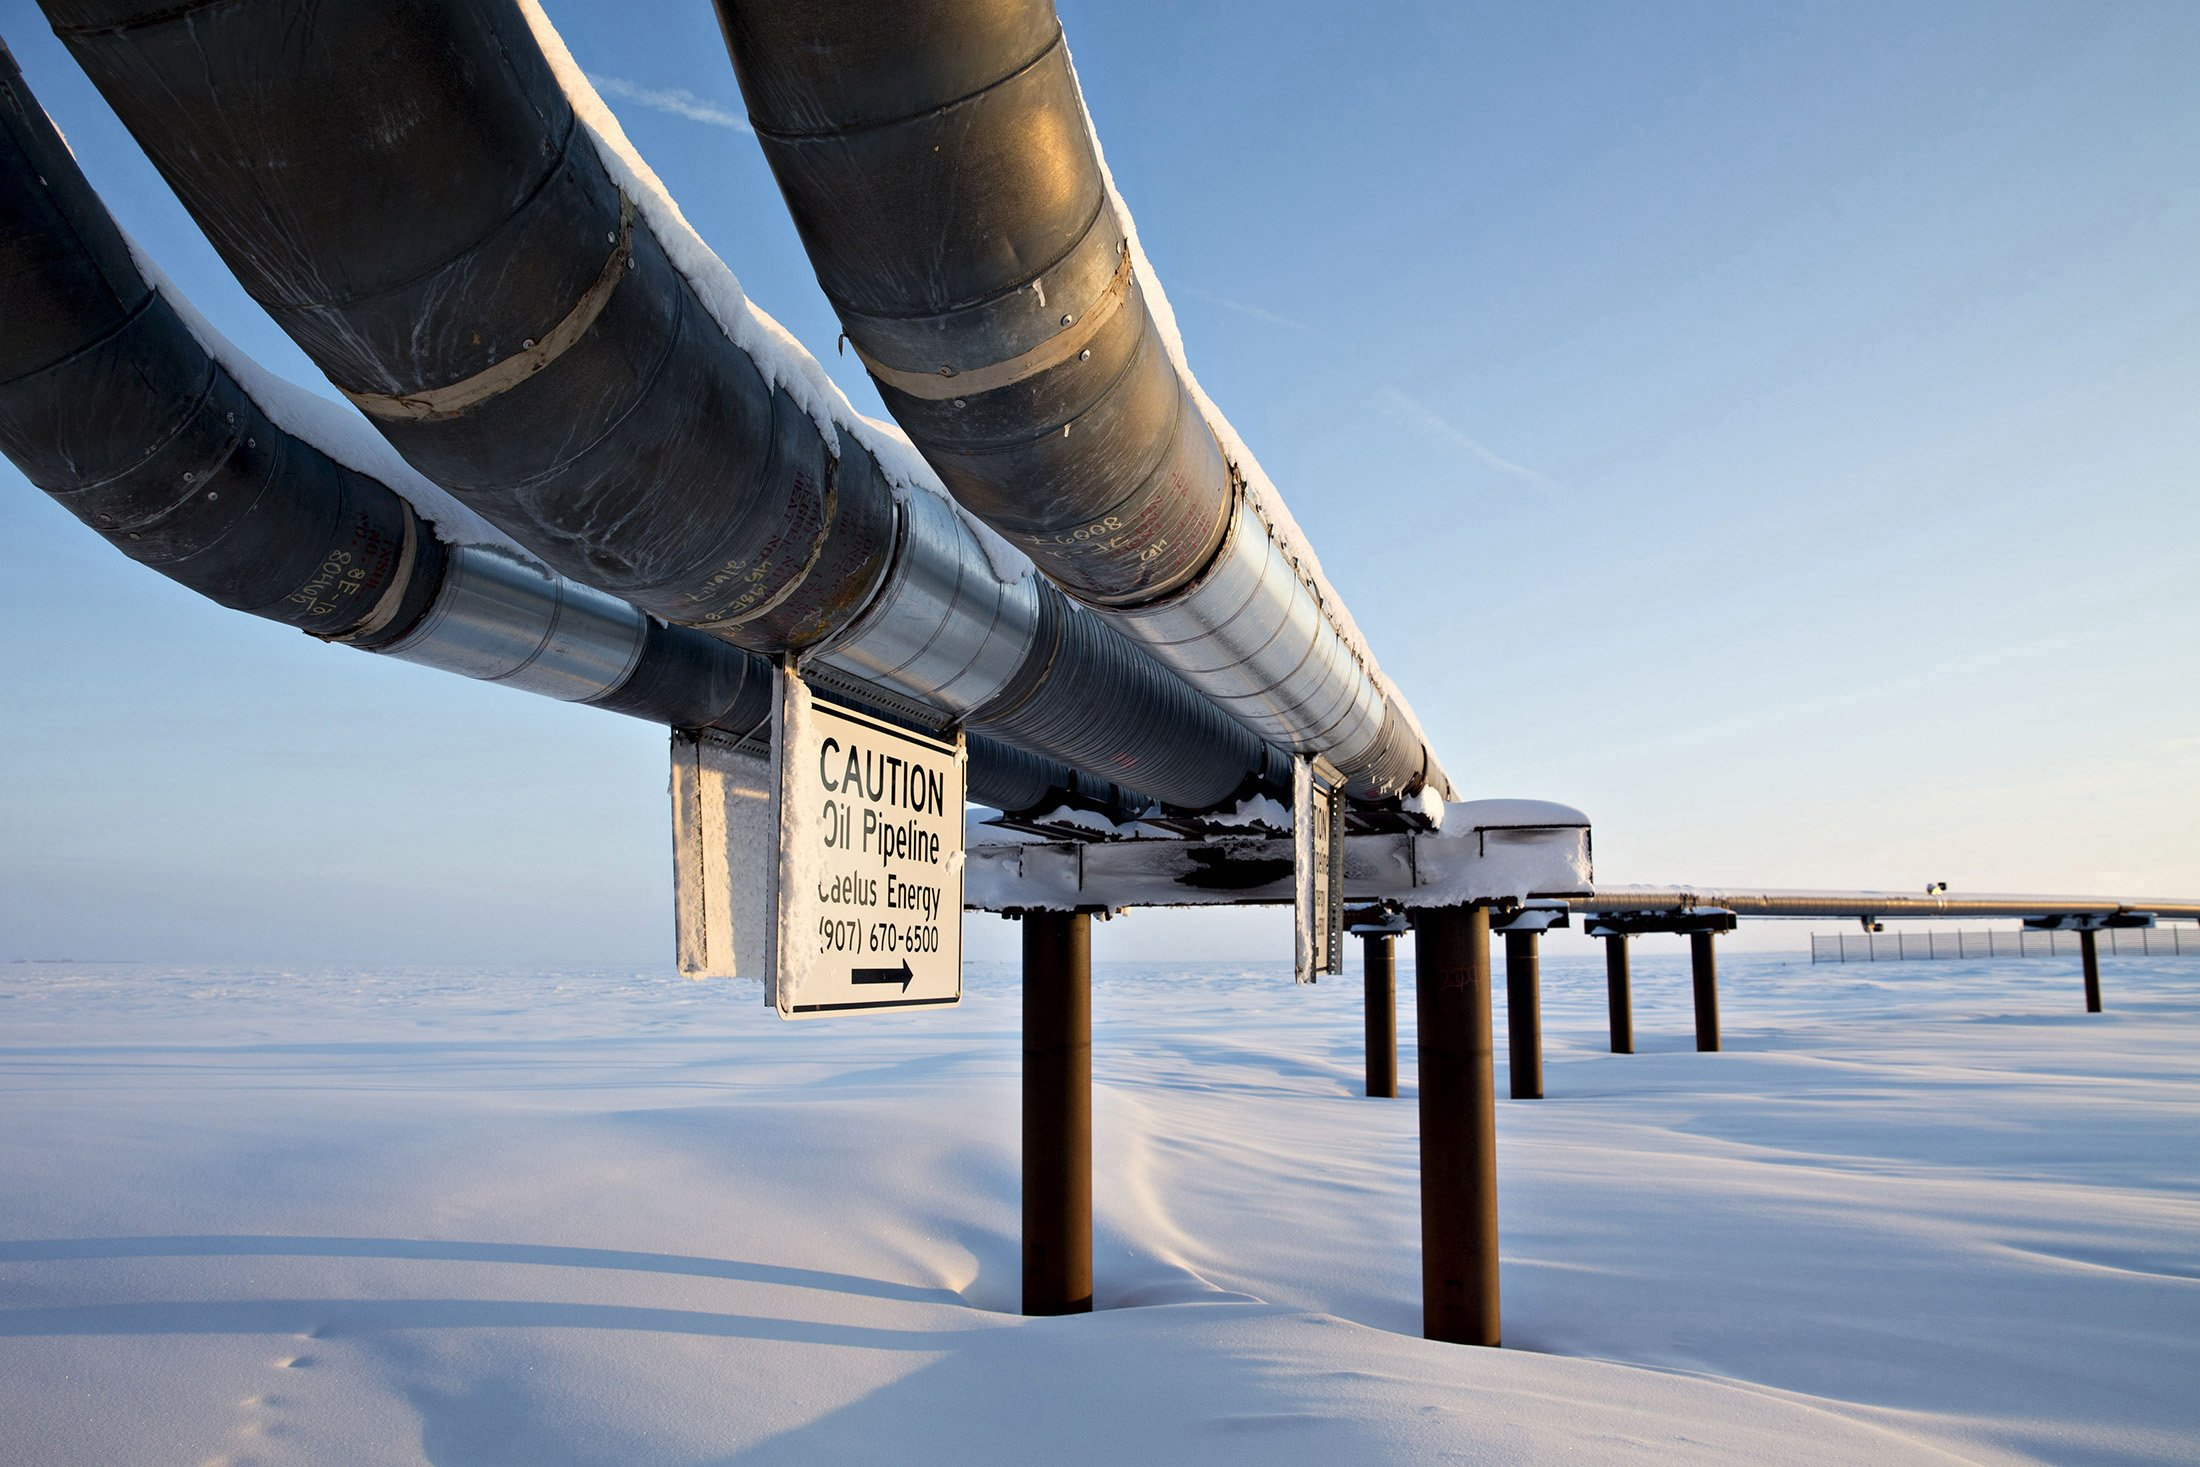 A big North Slope oil field remains alive despite bankruptcy, isolation